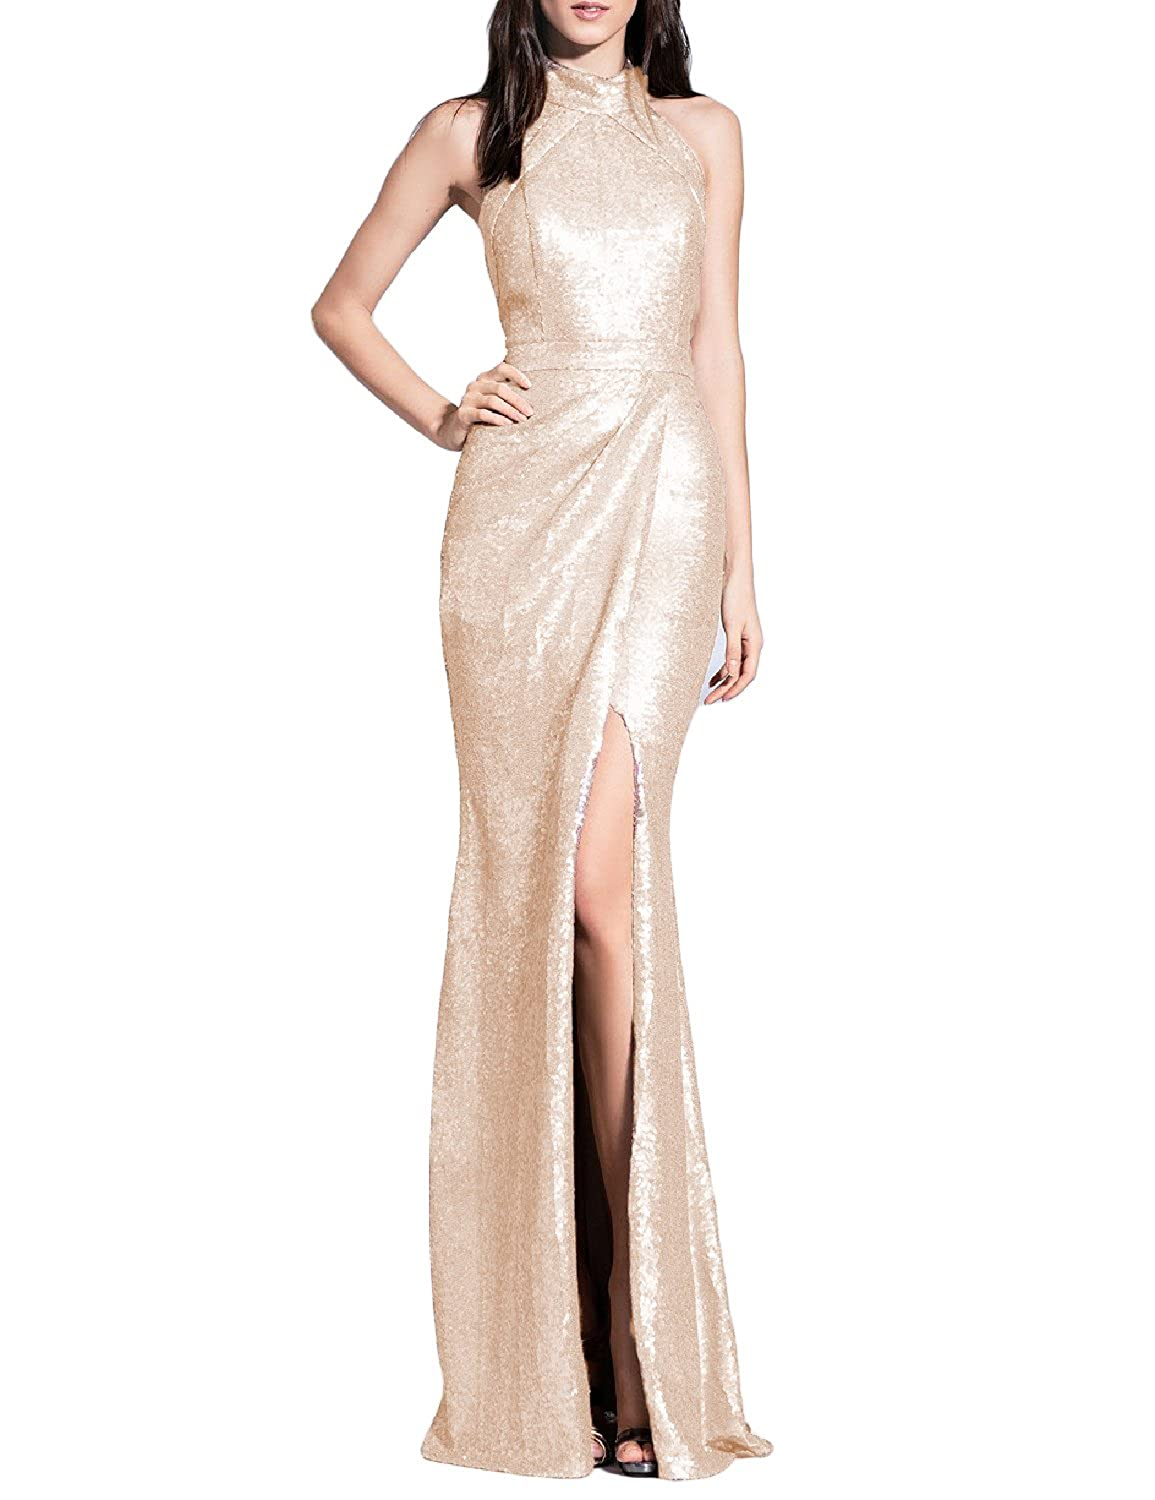 Champagne YSMei Women's Long Sequins Halter Evening Prom Dress Split Party Gowns YSQ90